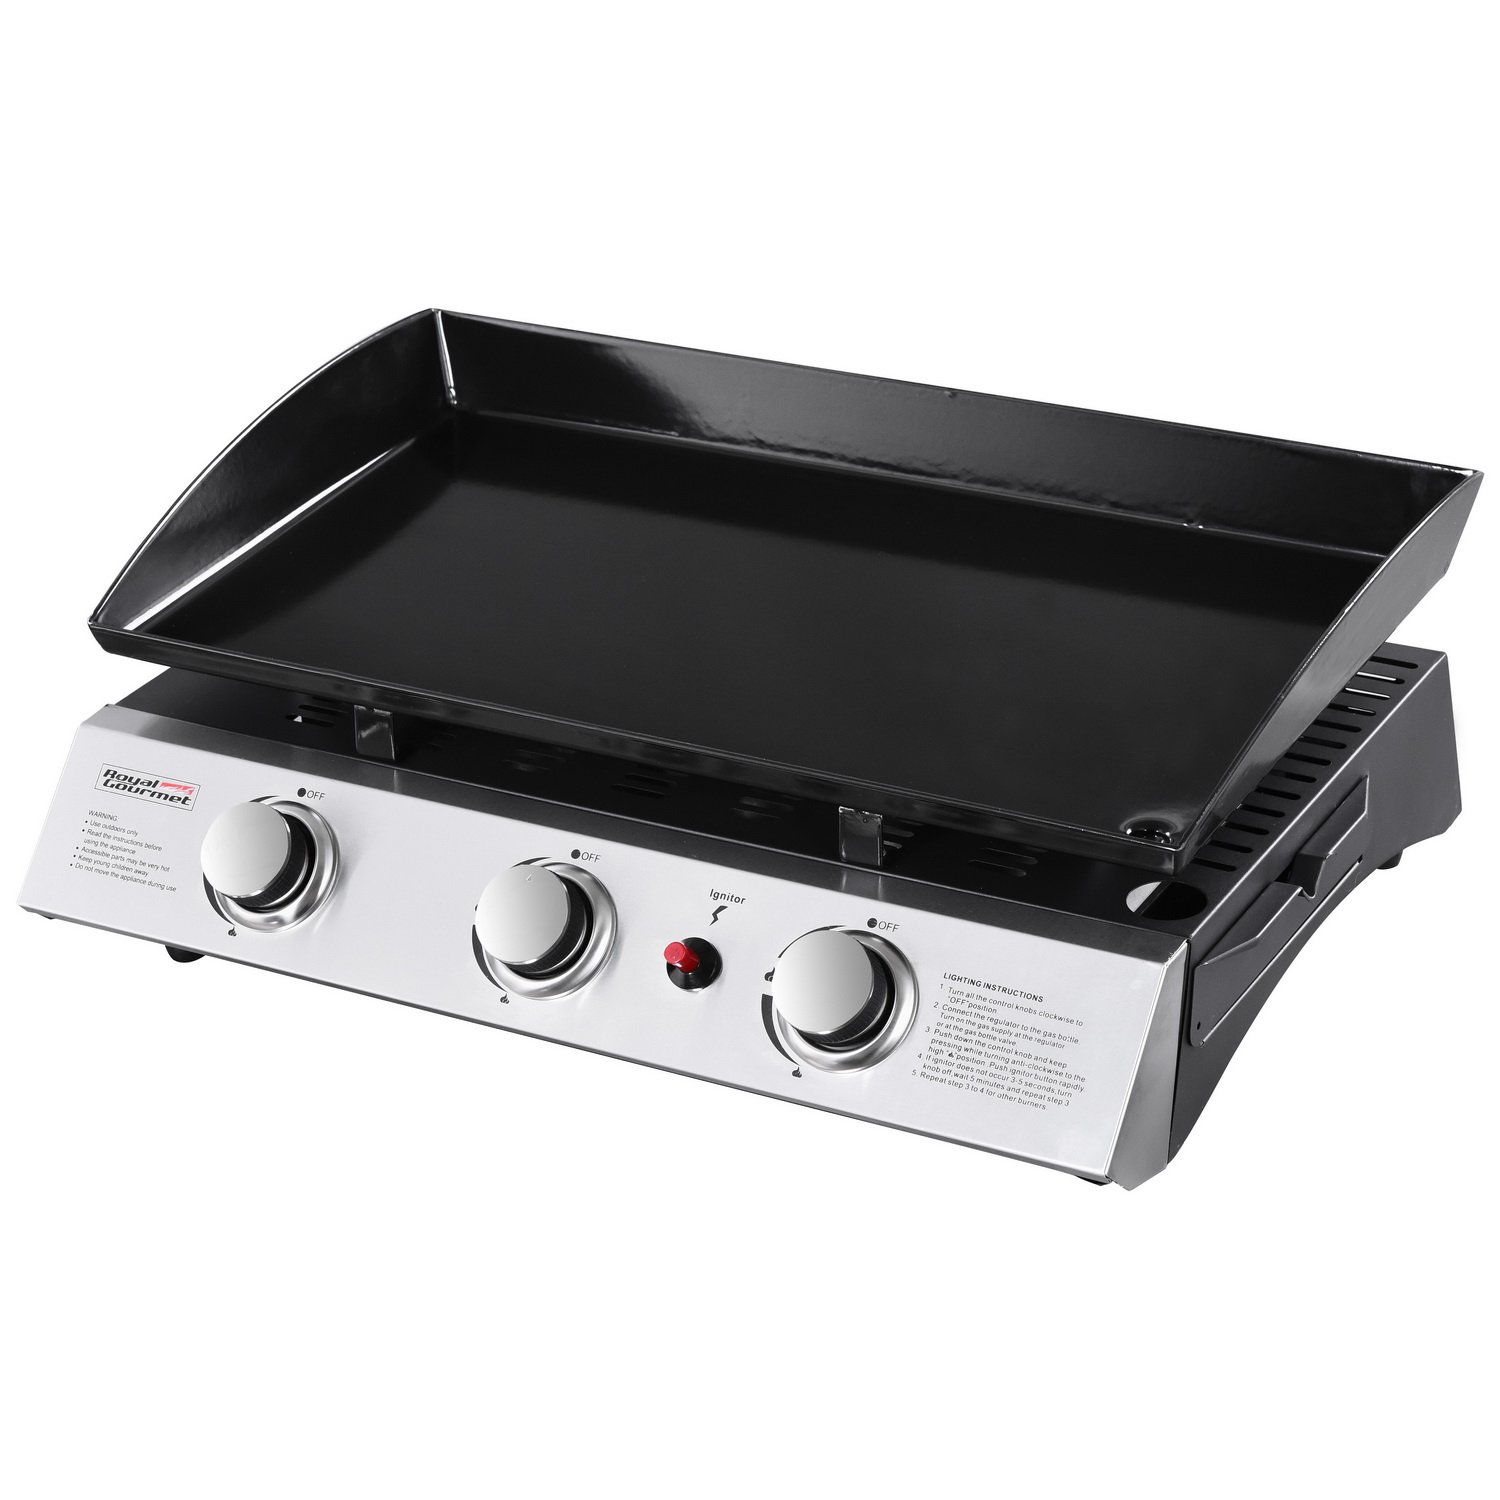 Steel Portable Tabletop 3 Burner Propane Gas Grill Royal ...